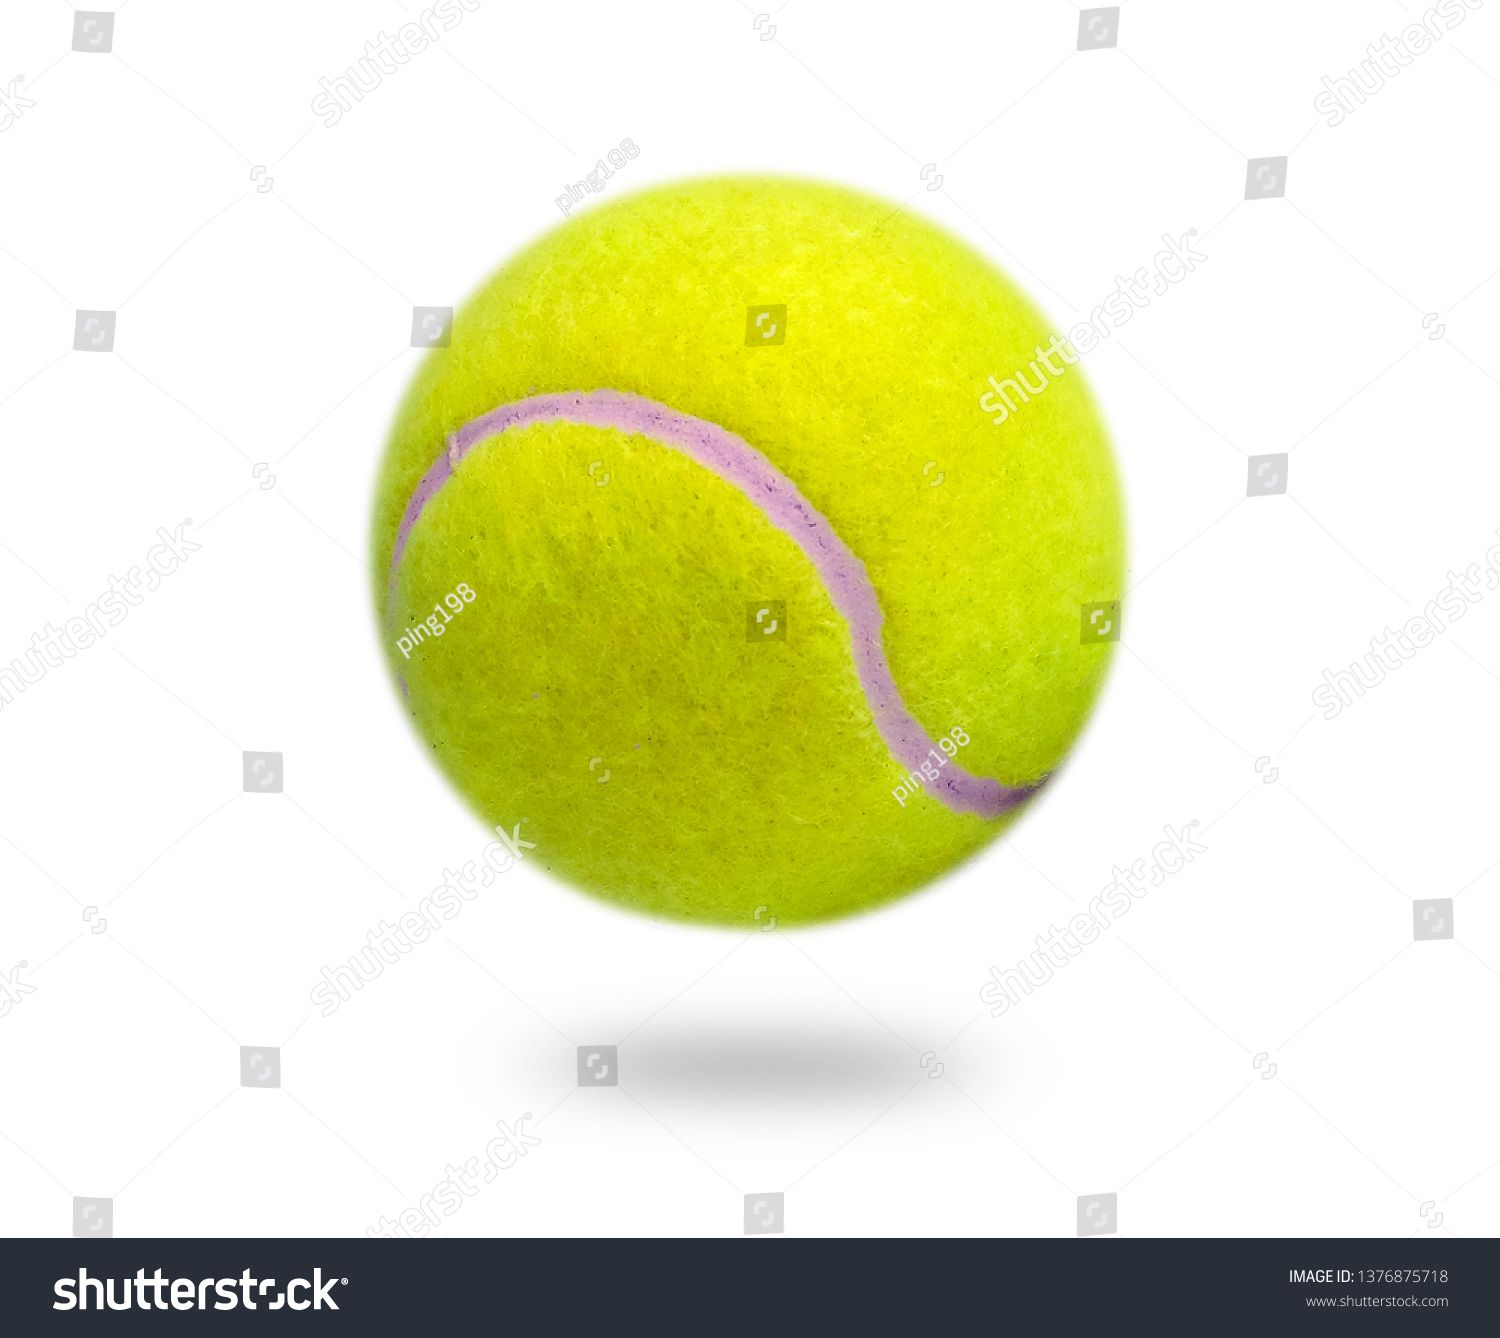 The Close Distance Of The Yellow Tennis Ball Is Pretty Clear Single Ball Isolated On A White Background That Can Tennis Ball Pretty Stock Photos Stock Photos